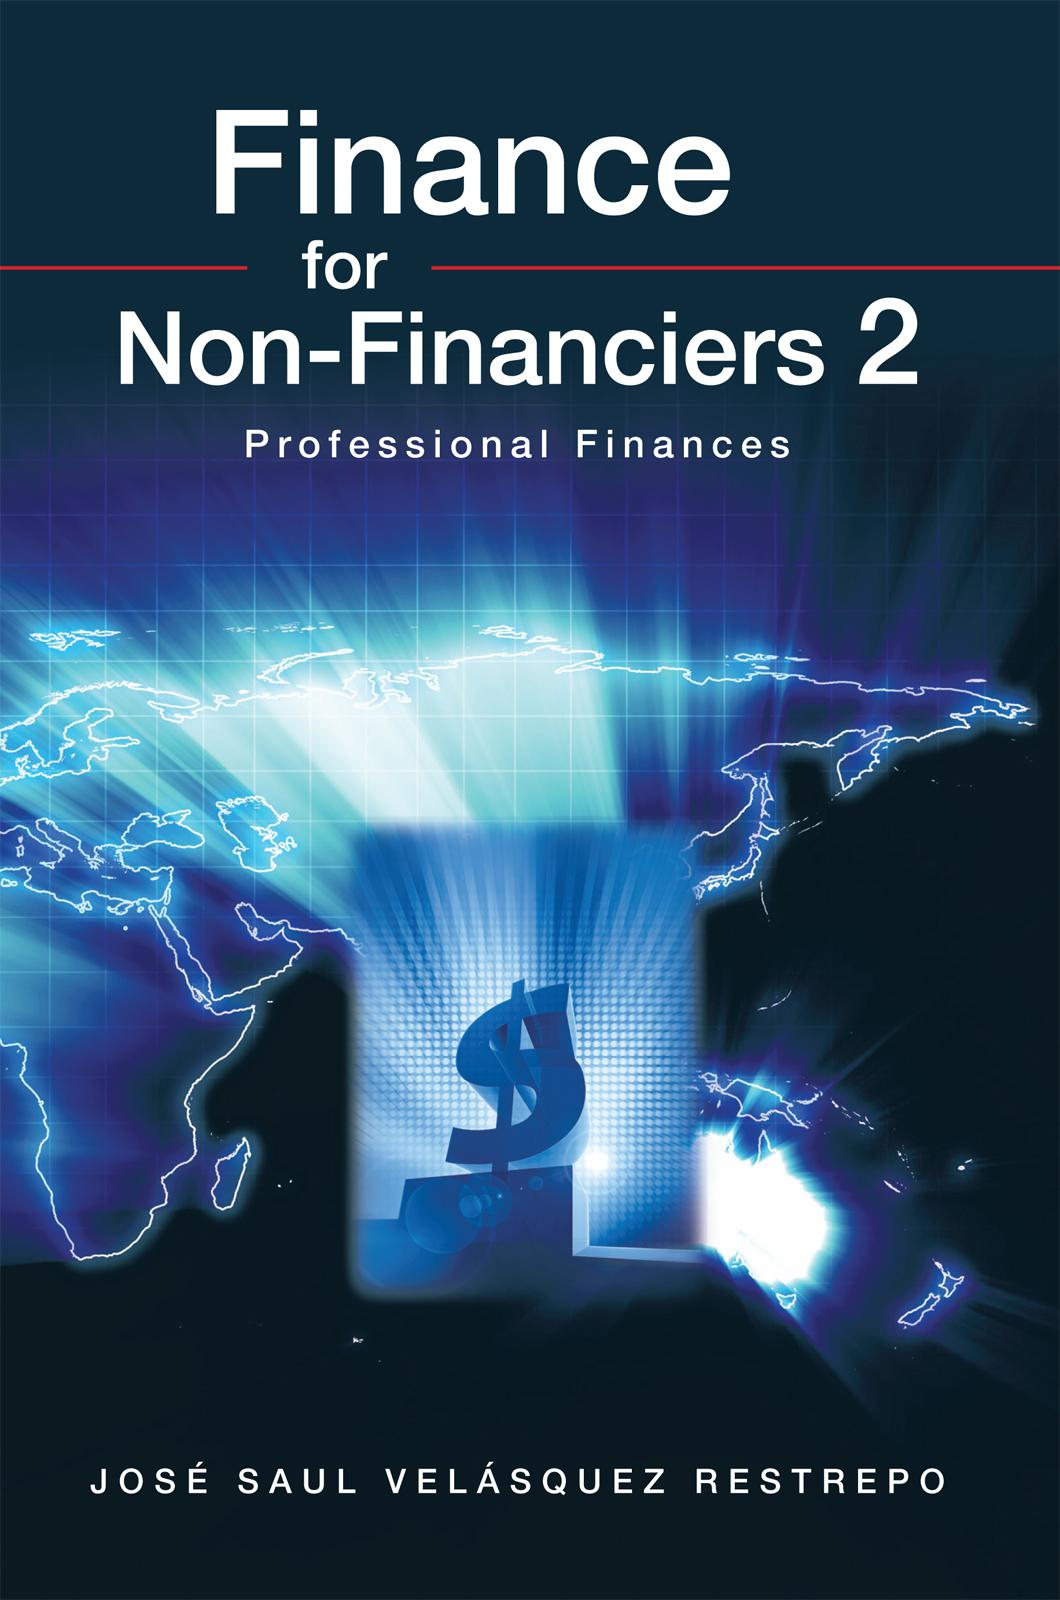 Finance for Non-Financiers 2